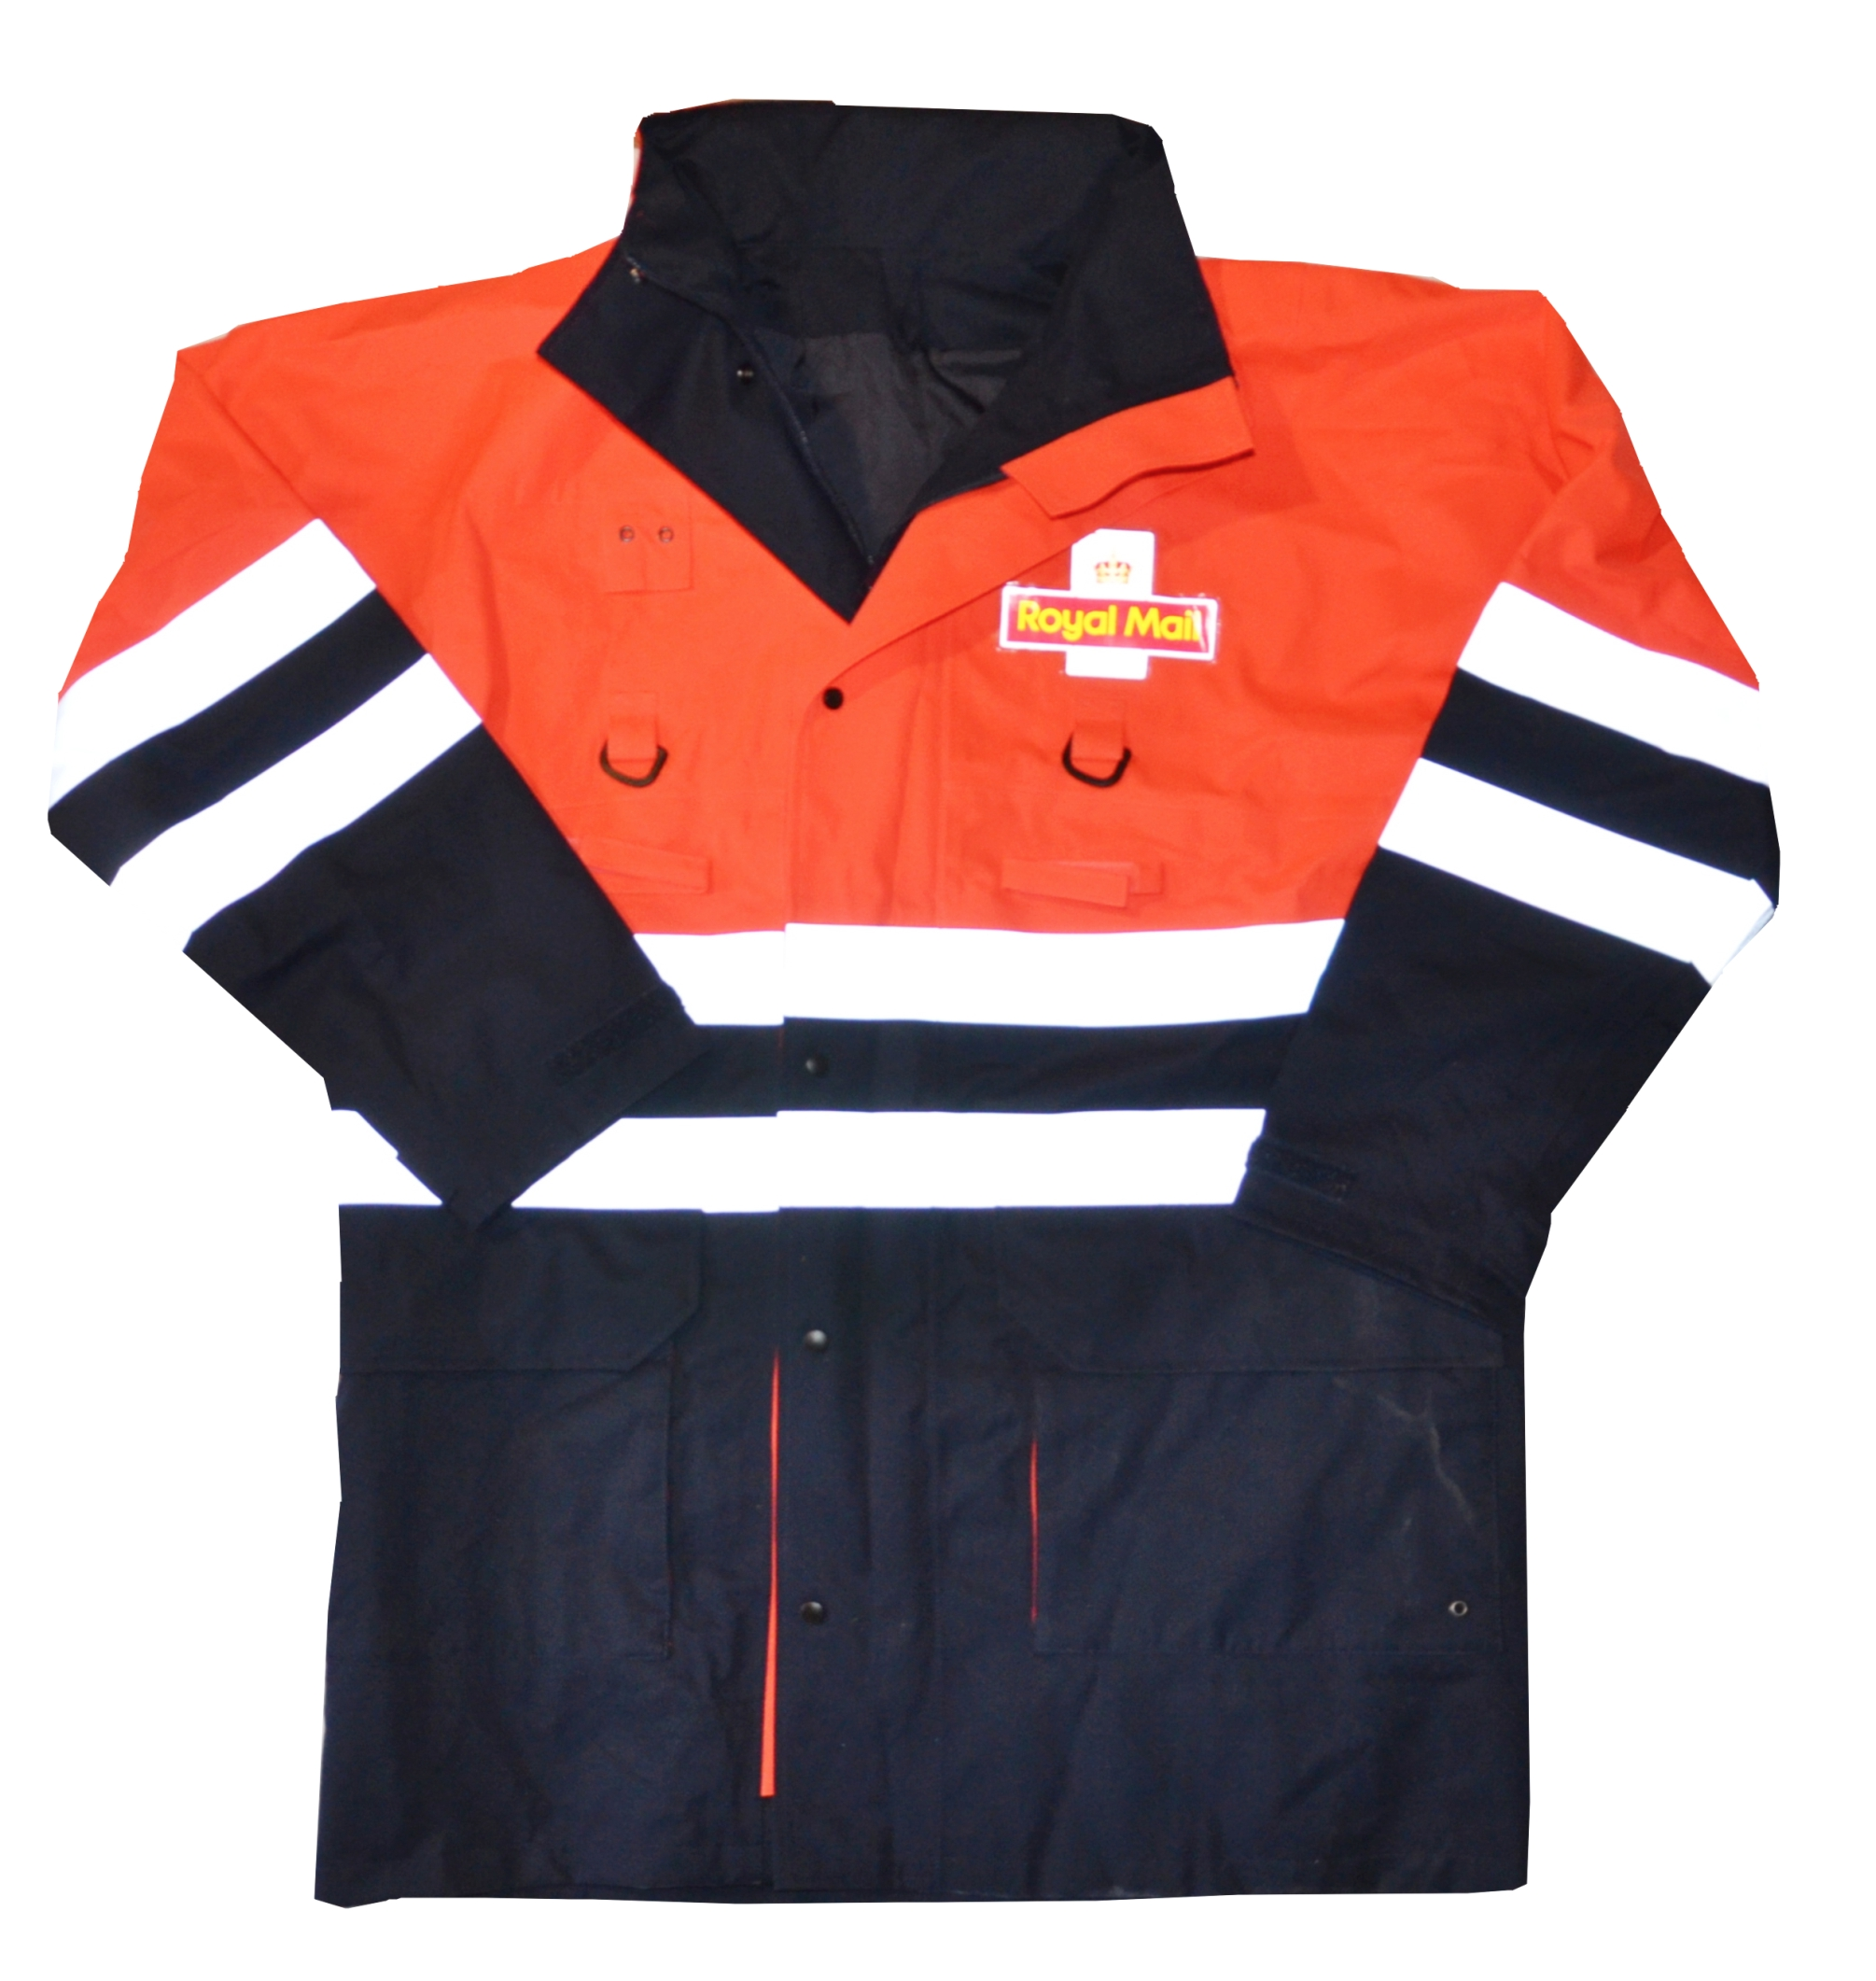 Bunda Britská Royal Mail Jacket, waterproof